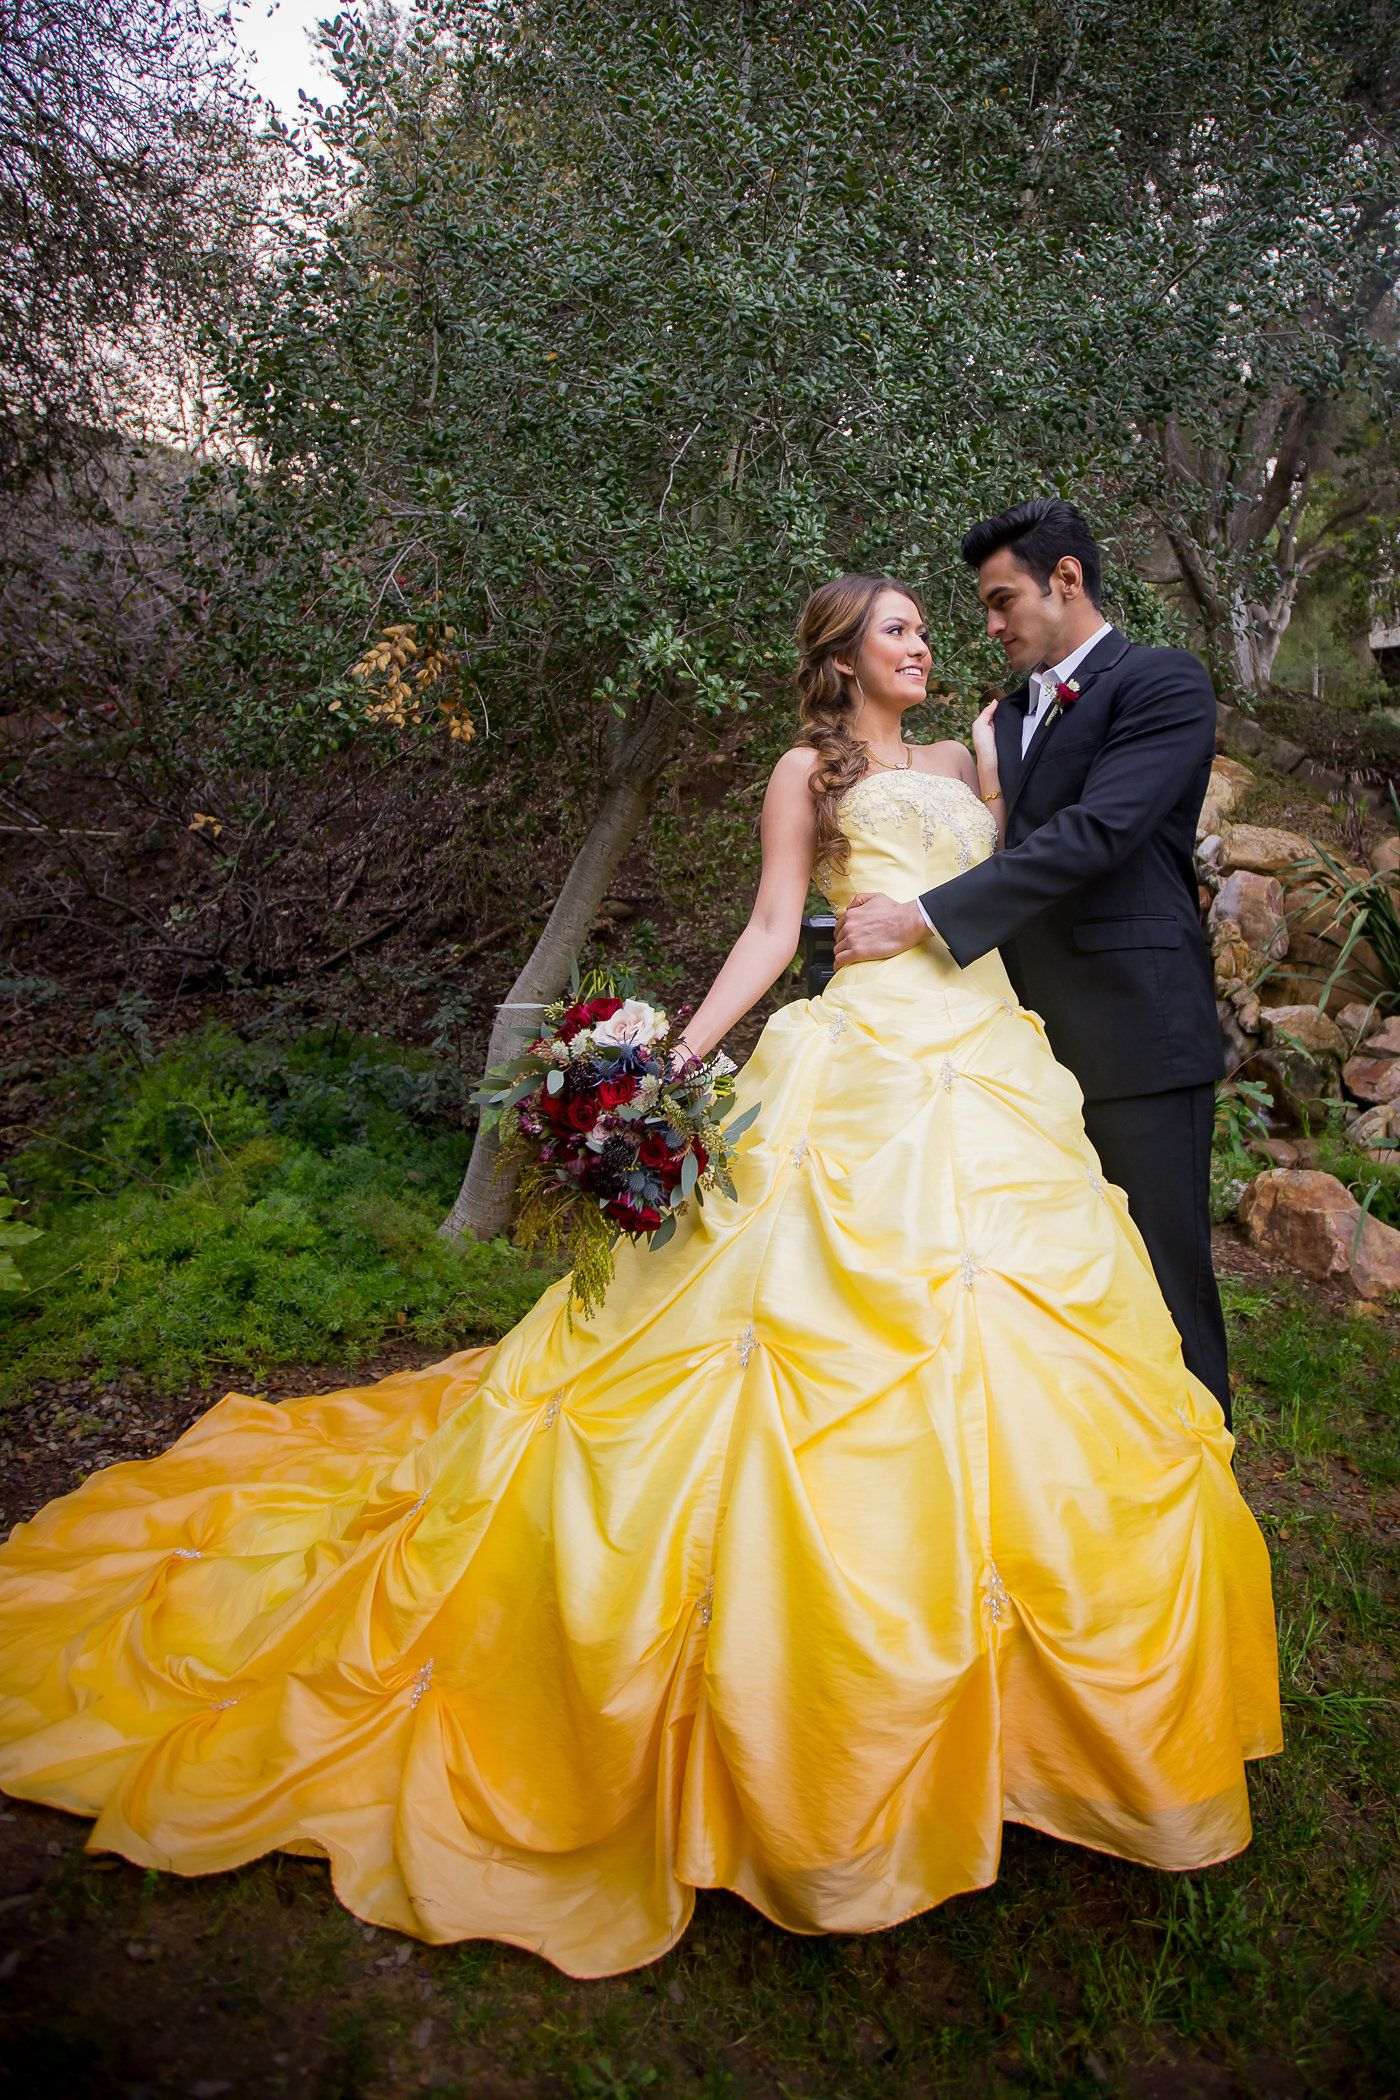 This 'Beauty And The Beast' Wedding Shoot Is Every Disney-Lover's